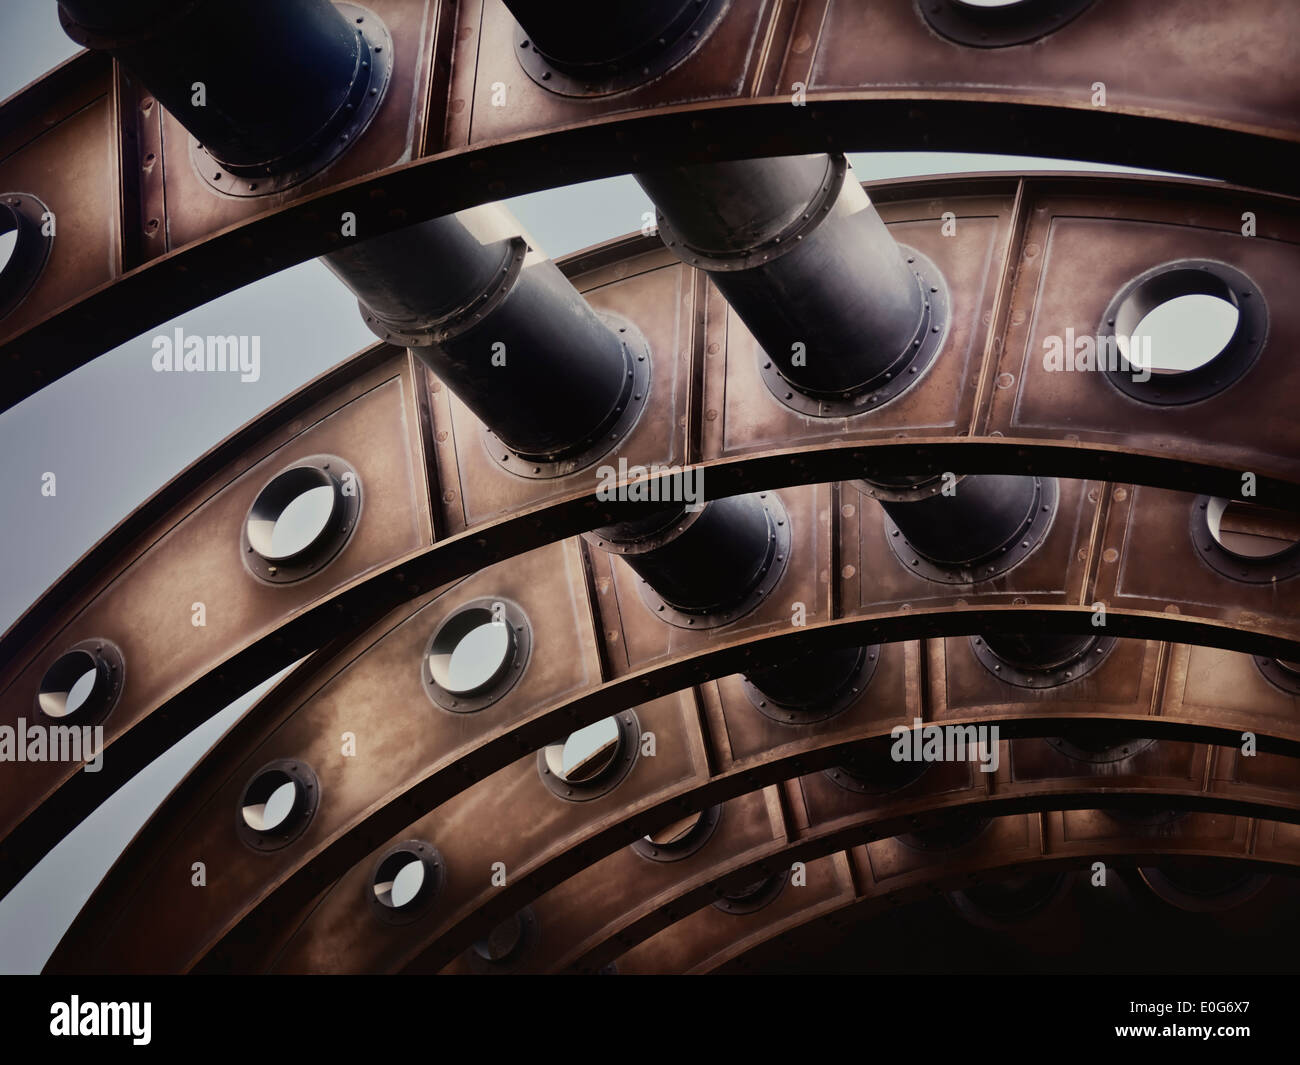 Rustc archway with pipes, structure in steampunk style abstract detail - Stock Image